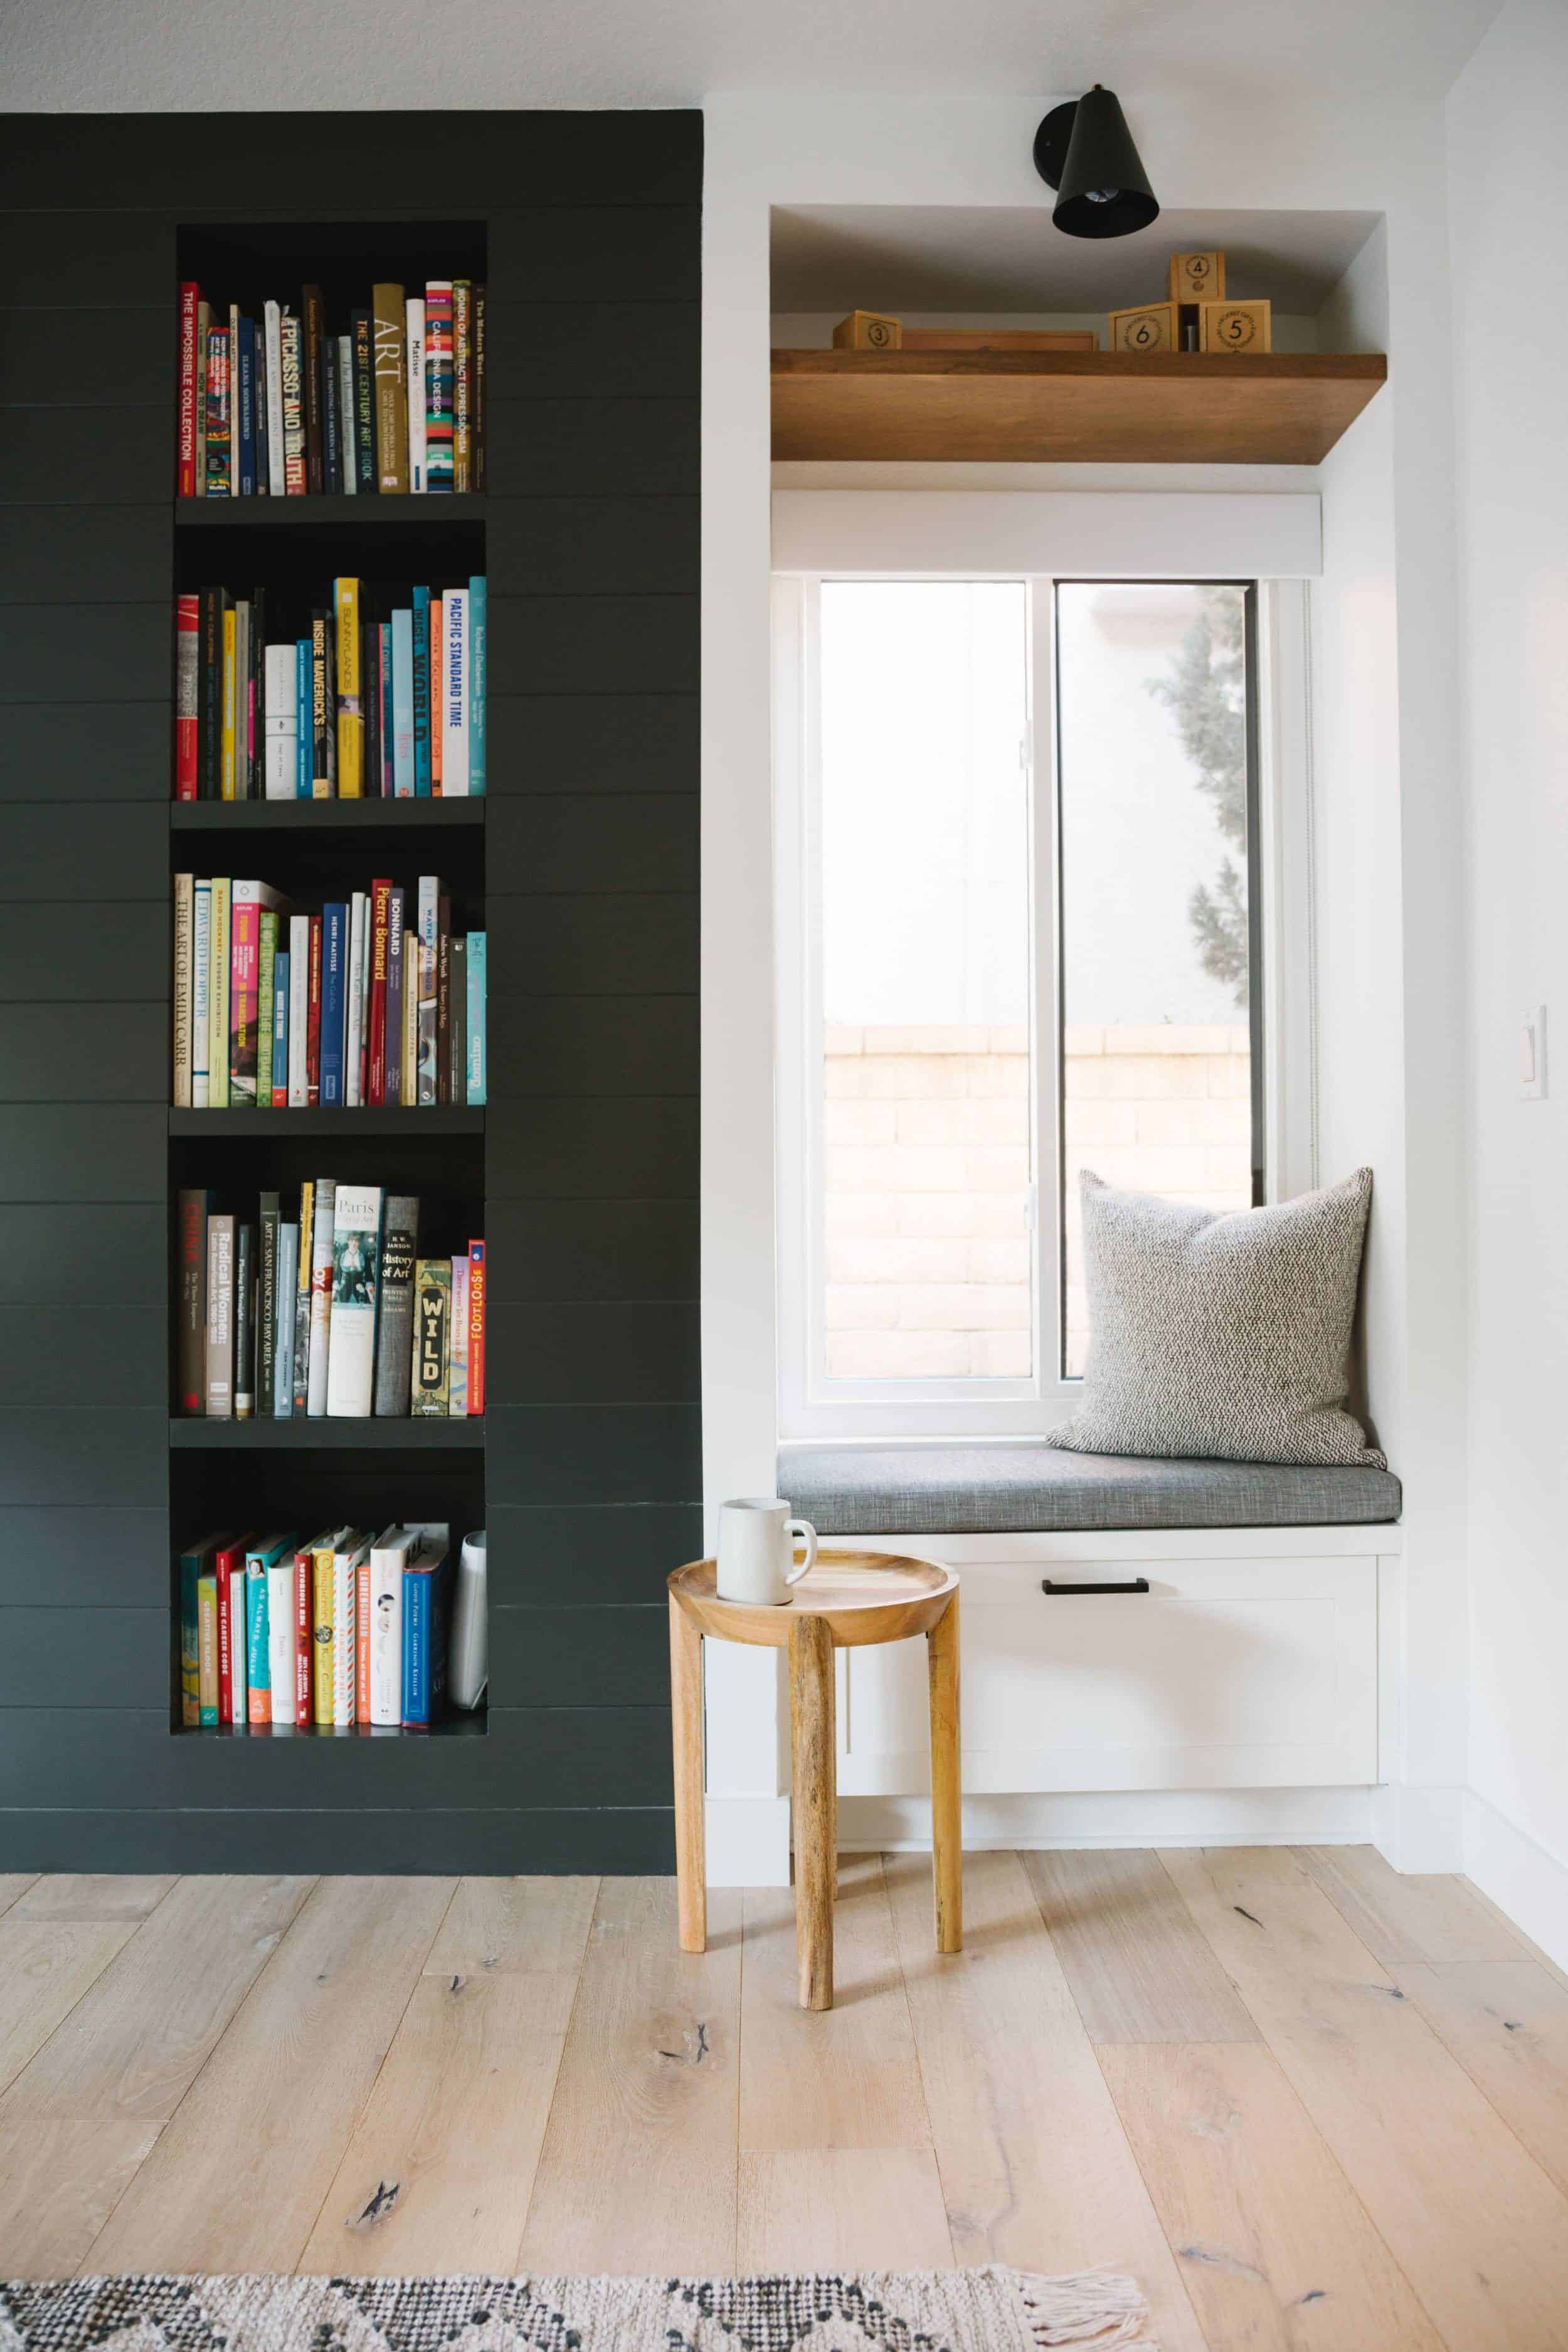 Window Seat Reading Nook With Built-in Shelving